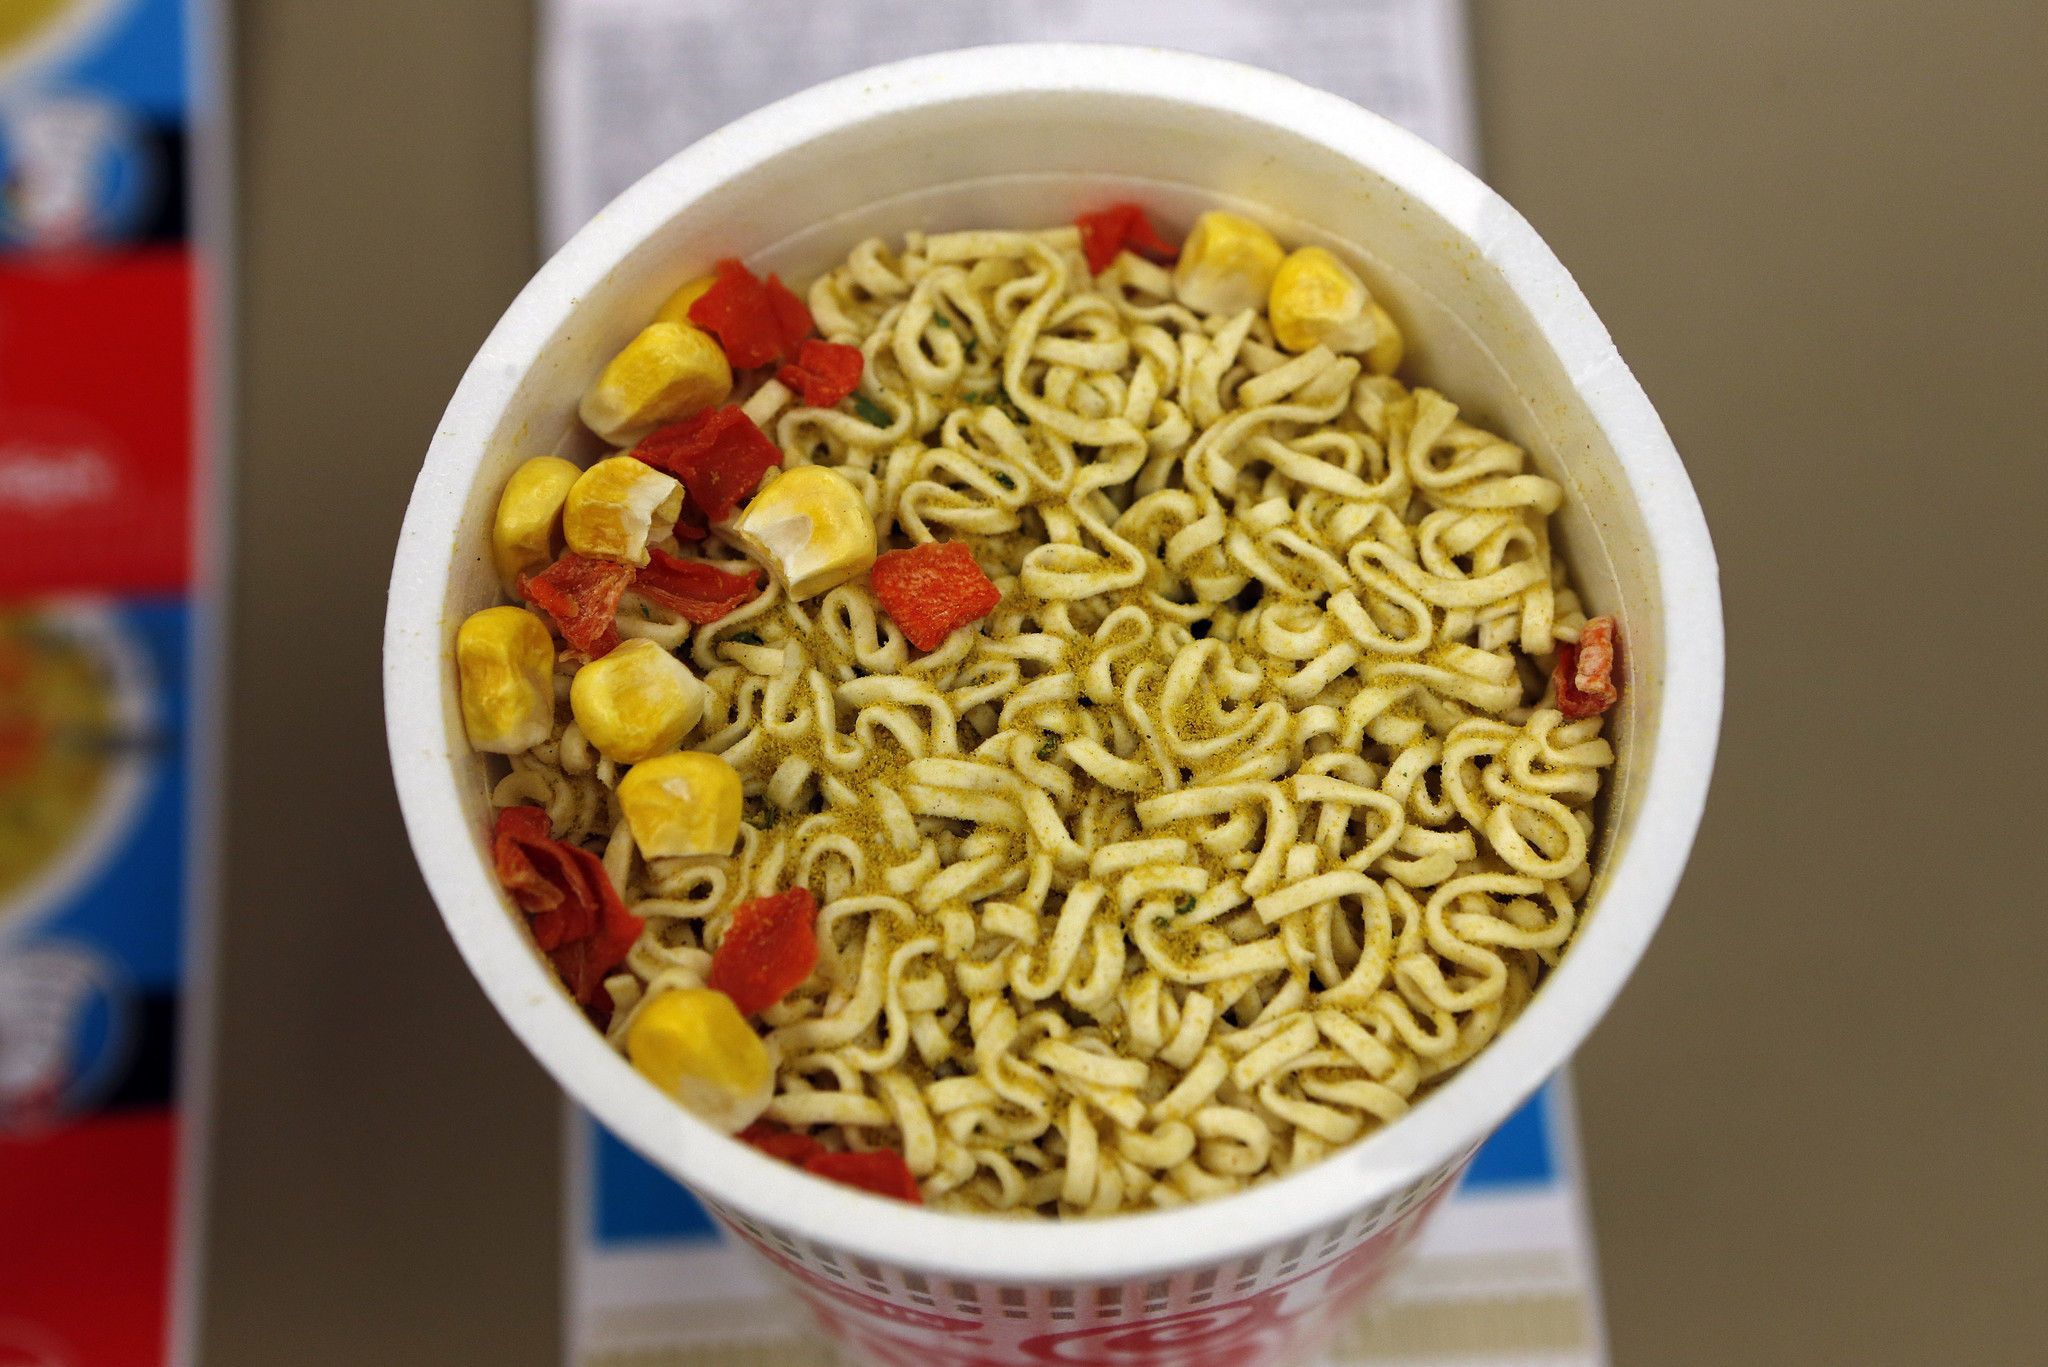 Are Ramen Noodles Healthy Without The Seasoning  ramen noodles without seasoning sodium